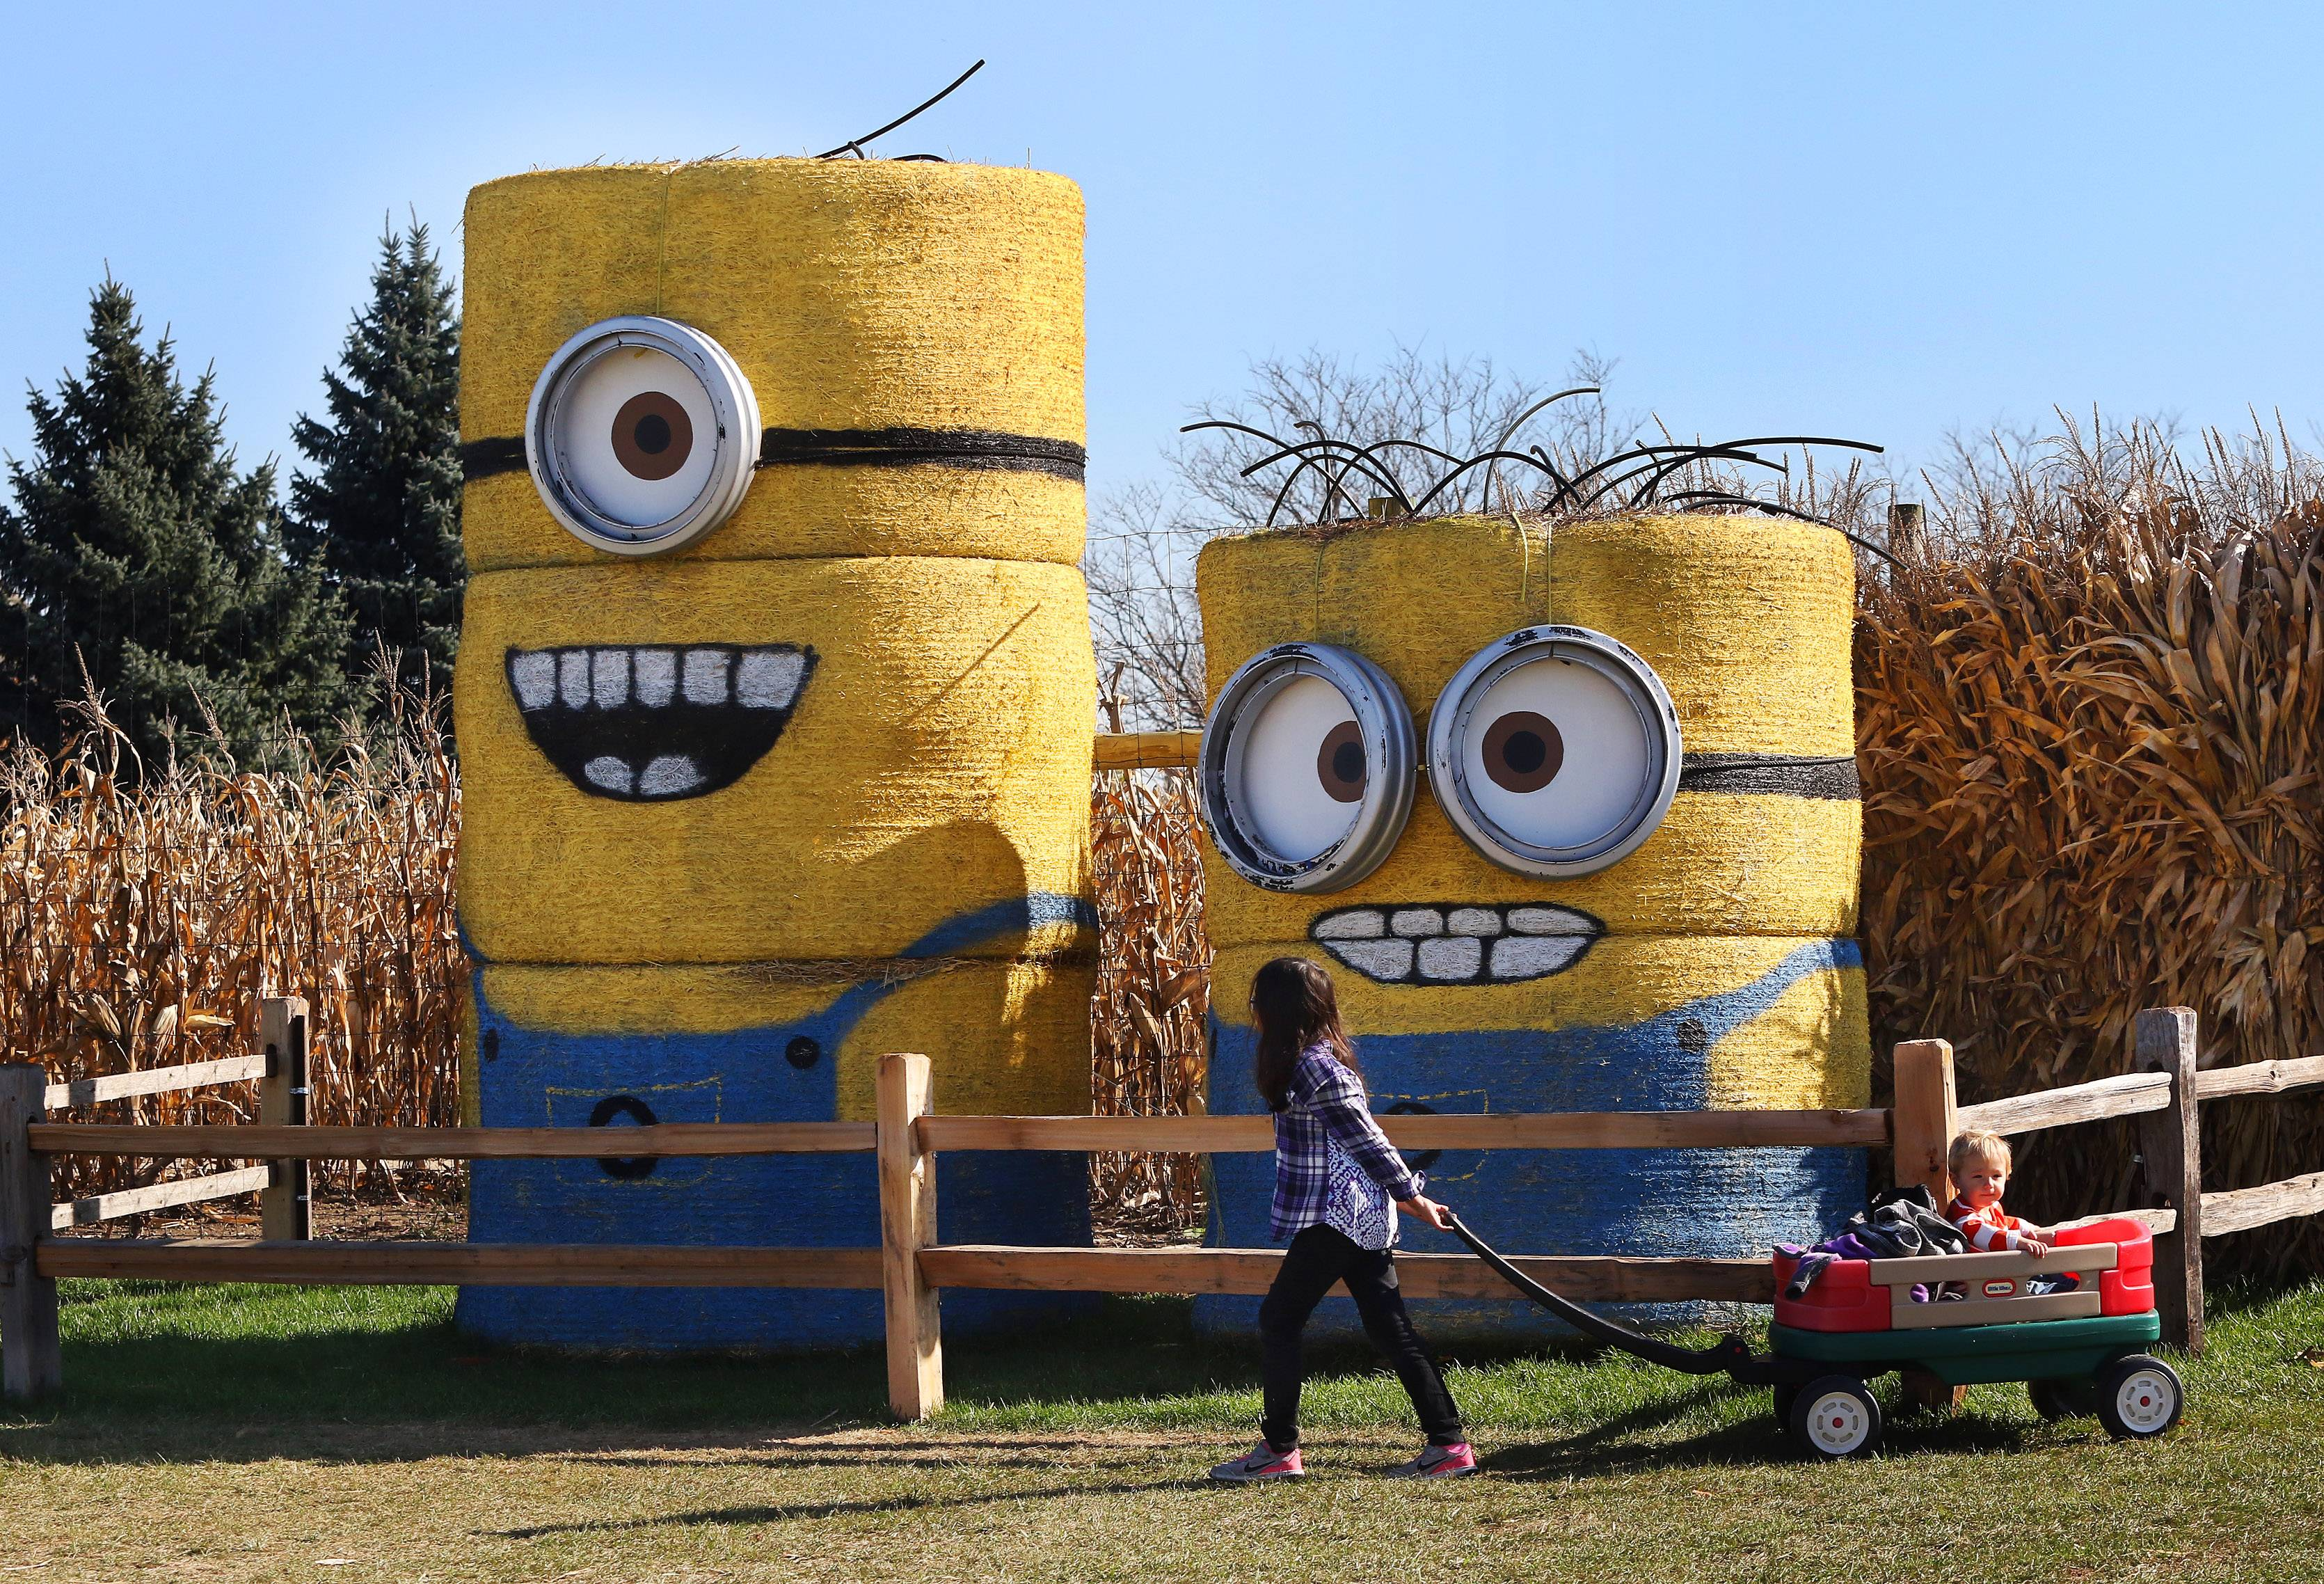 Sophia Boun, 8, of Hoffman Estates pulls a wagon with one-year-old Benjamin Innocenti of Lake Zurich past giant Minions made of hay during Fall Festival at Goebbert's Farm & Garden Center in South Barrington on Sunday. The event featured lots and lots of pumpkins, a harvest market, corn mazes, hay rides, Animal Land and more.